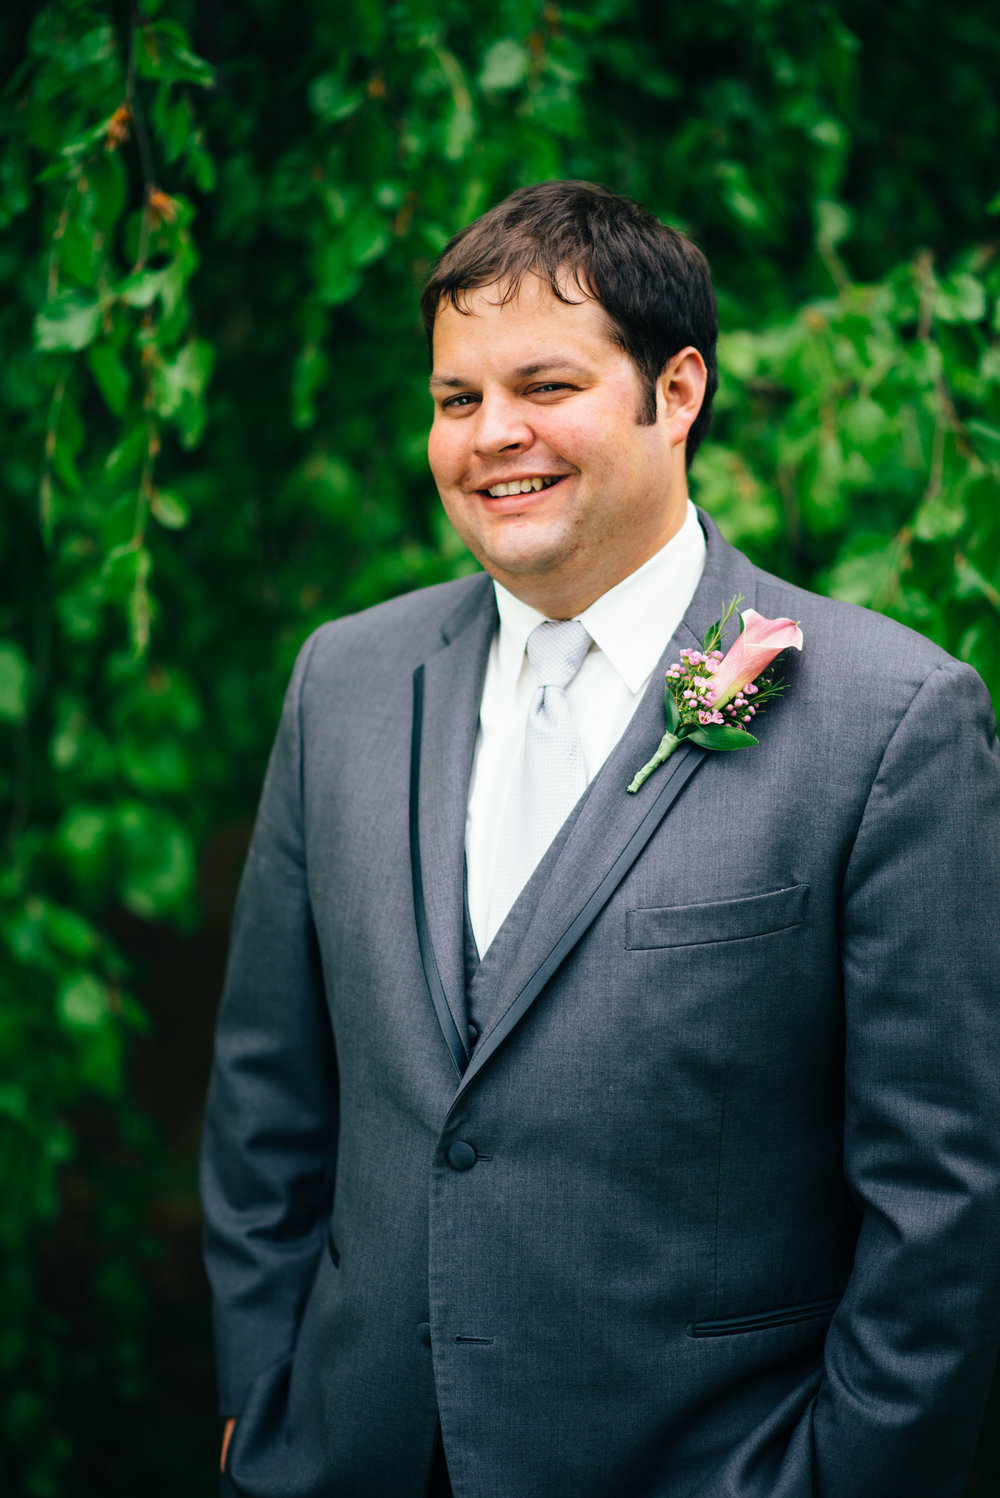 Headshot of smiling groom wearing Vera Wag Black collection suit and cala lilly boutineer